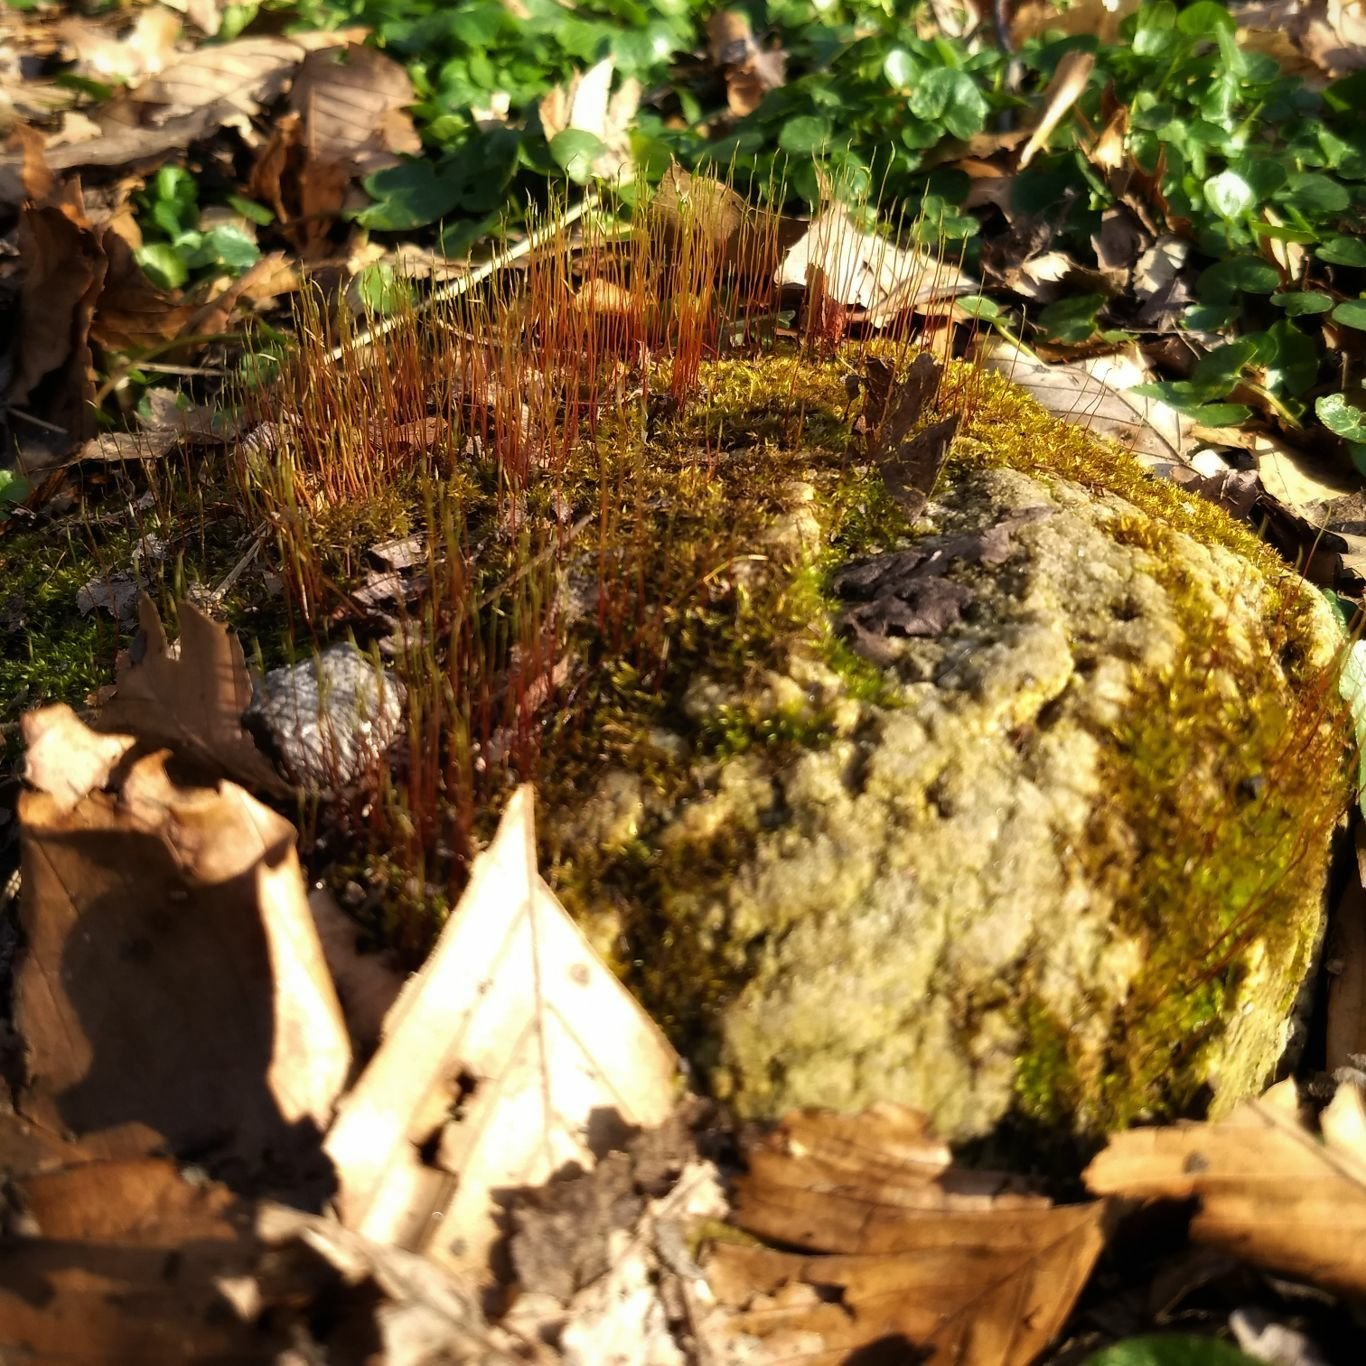 Rock with moss in bed of dried leaves and beginning of verdant spring growth.